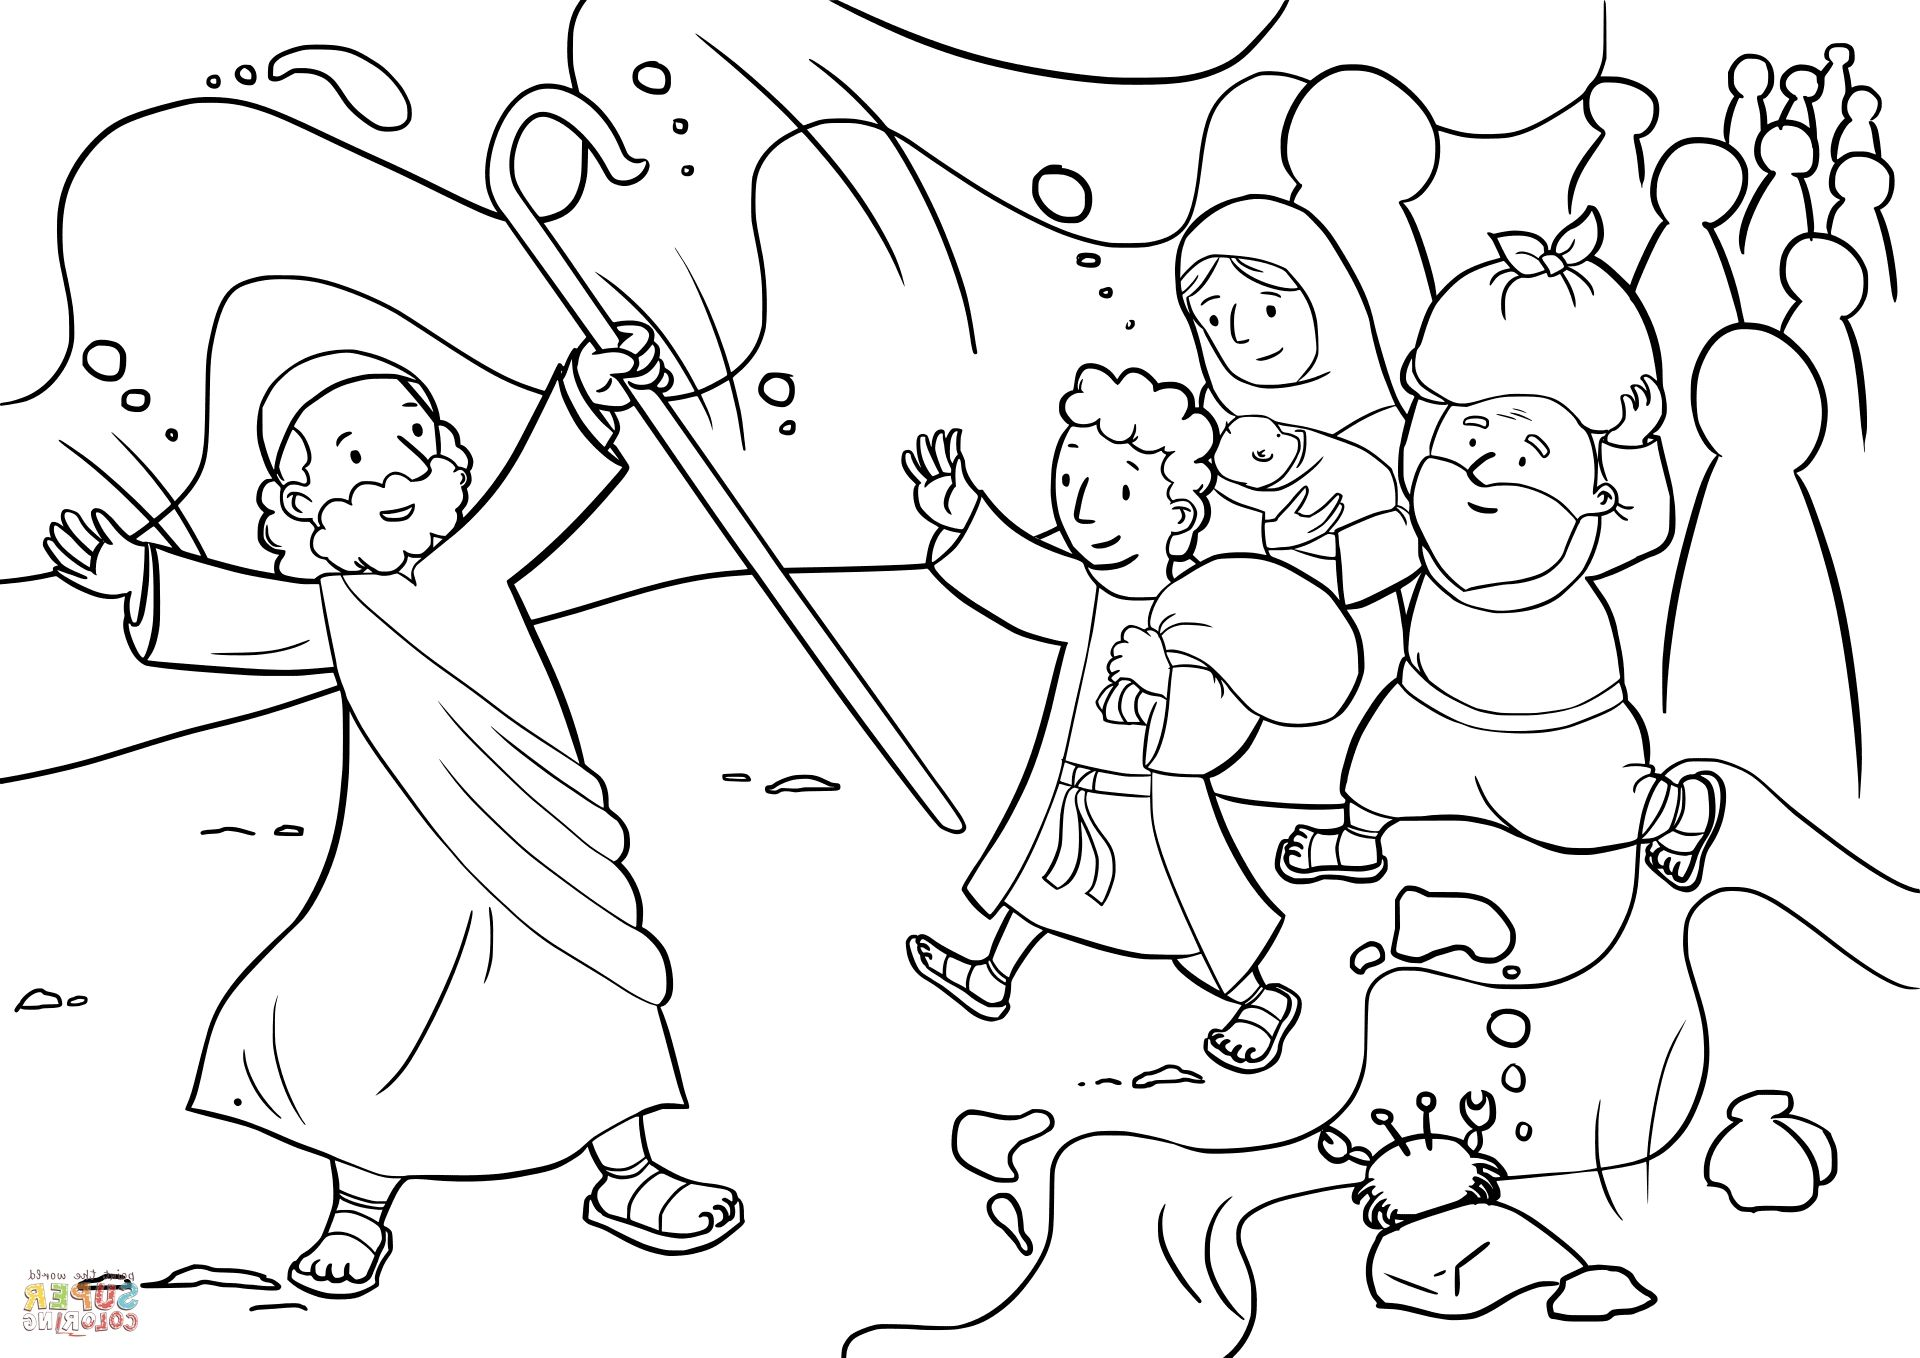 moses red sea crossing coloring pages | Moses Red Sea Coloring Page | Coloring Page | Moses red ...